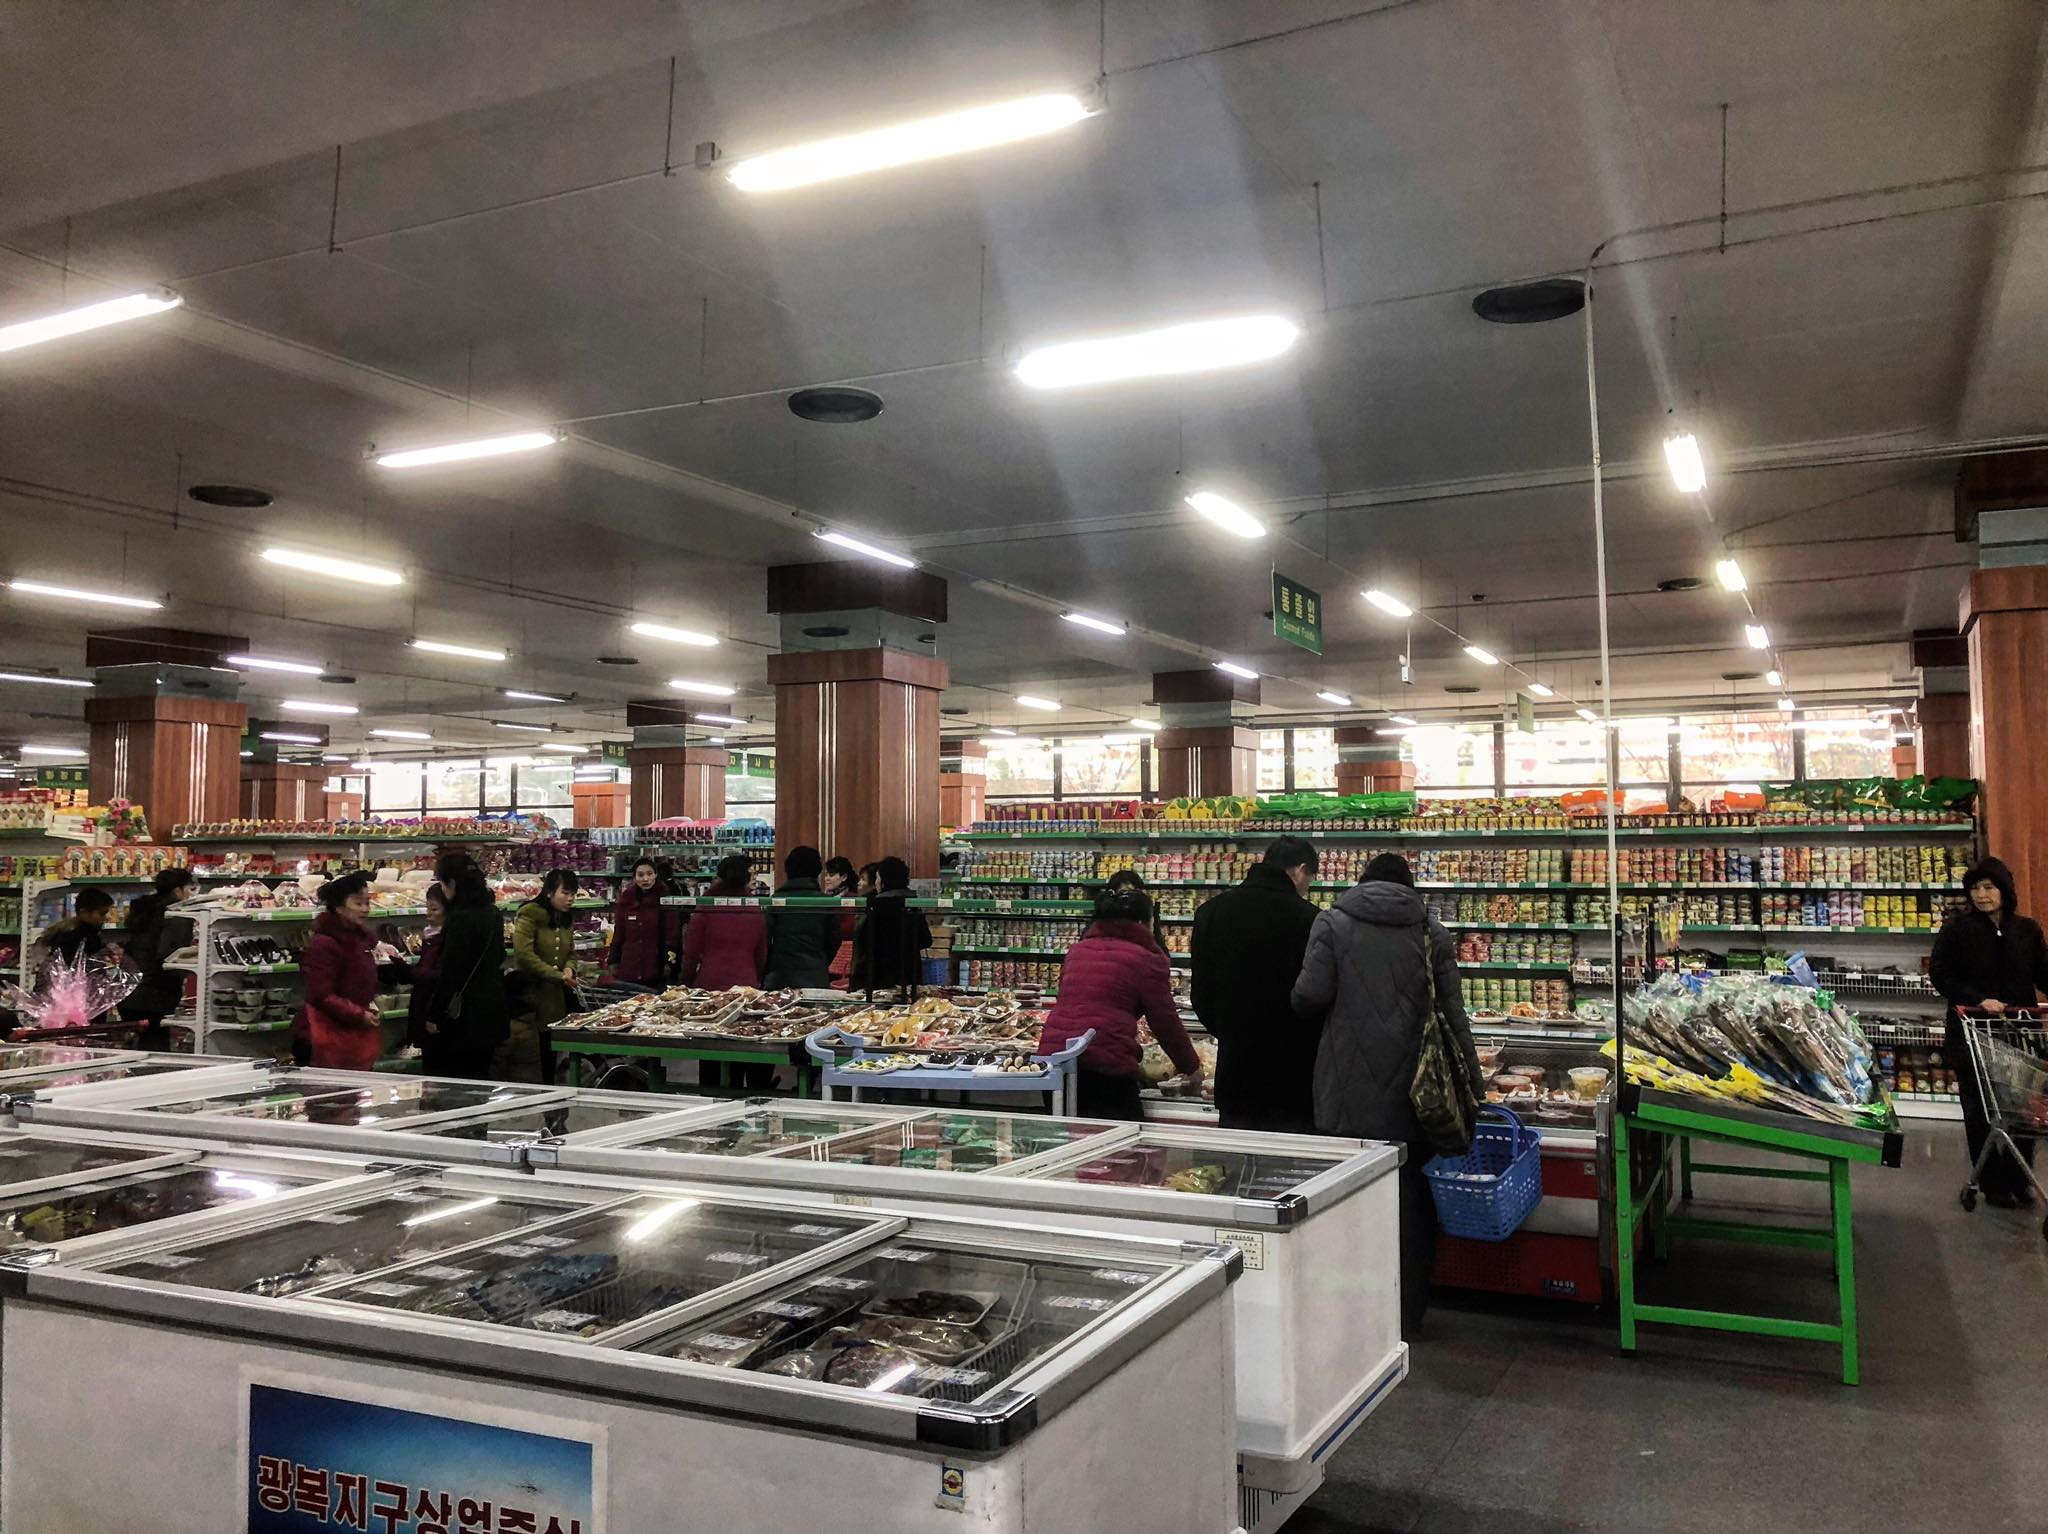 Pyongyang Supermarket - Photo Credit: Crooked Compass